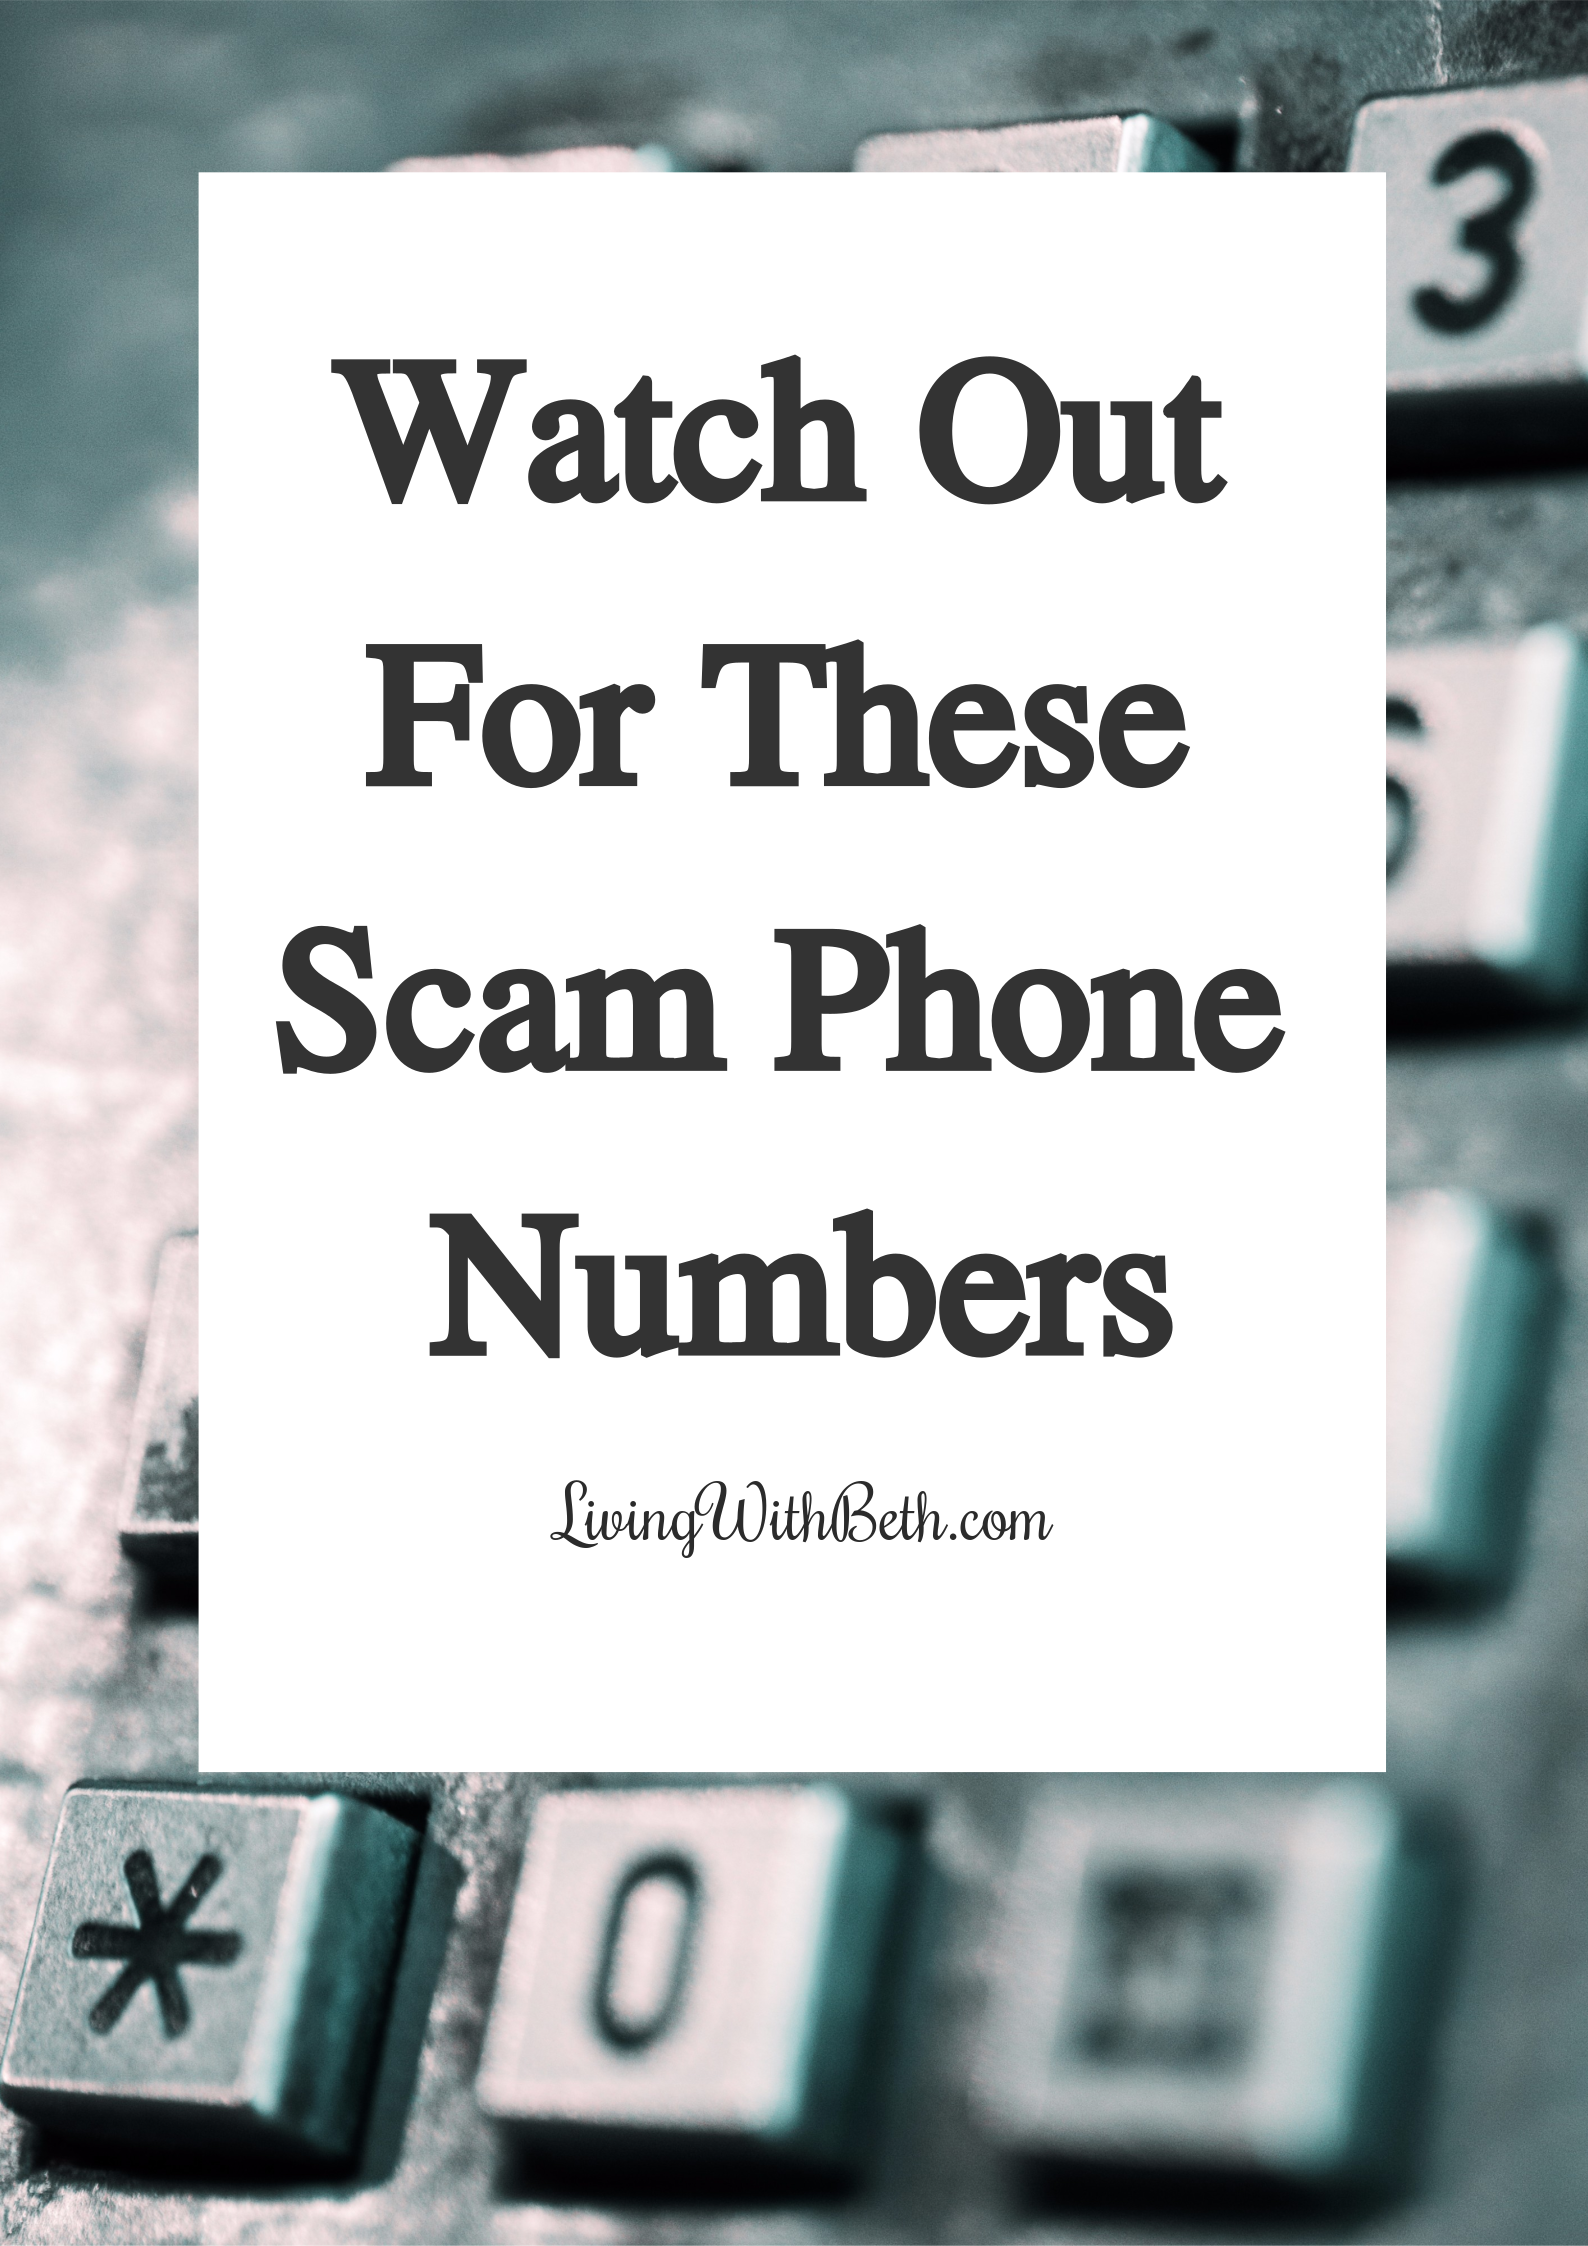 Watch Out For These Scam Phone Numbers